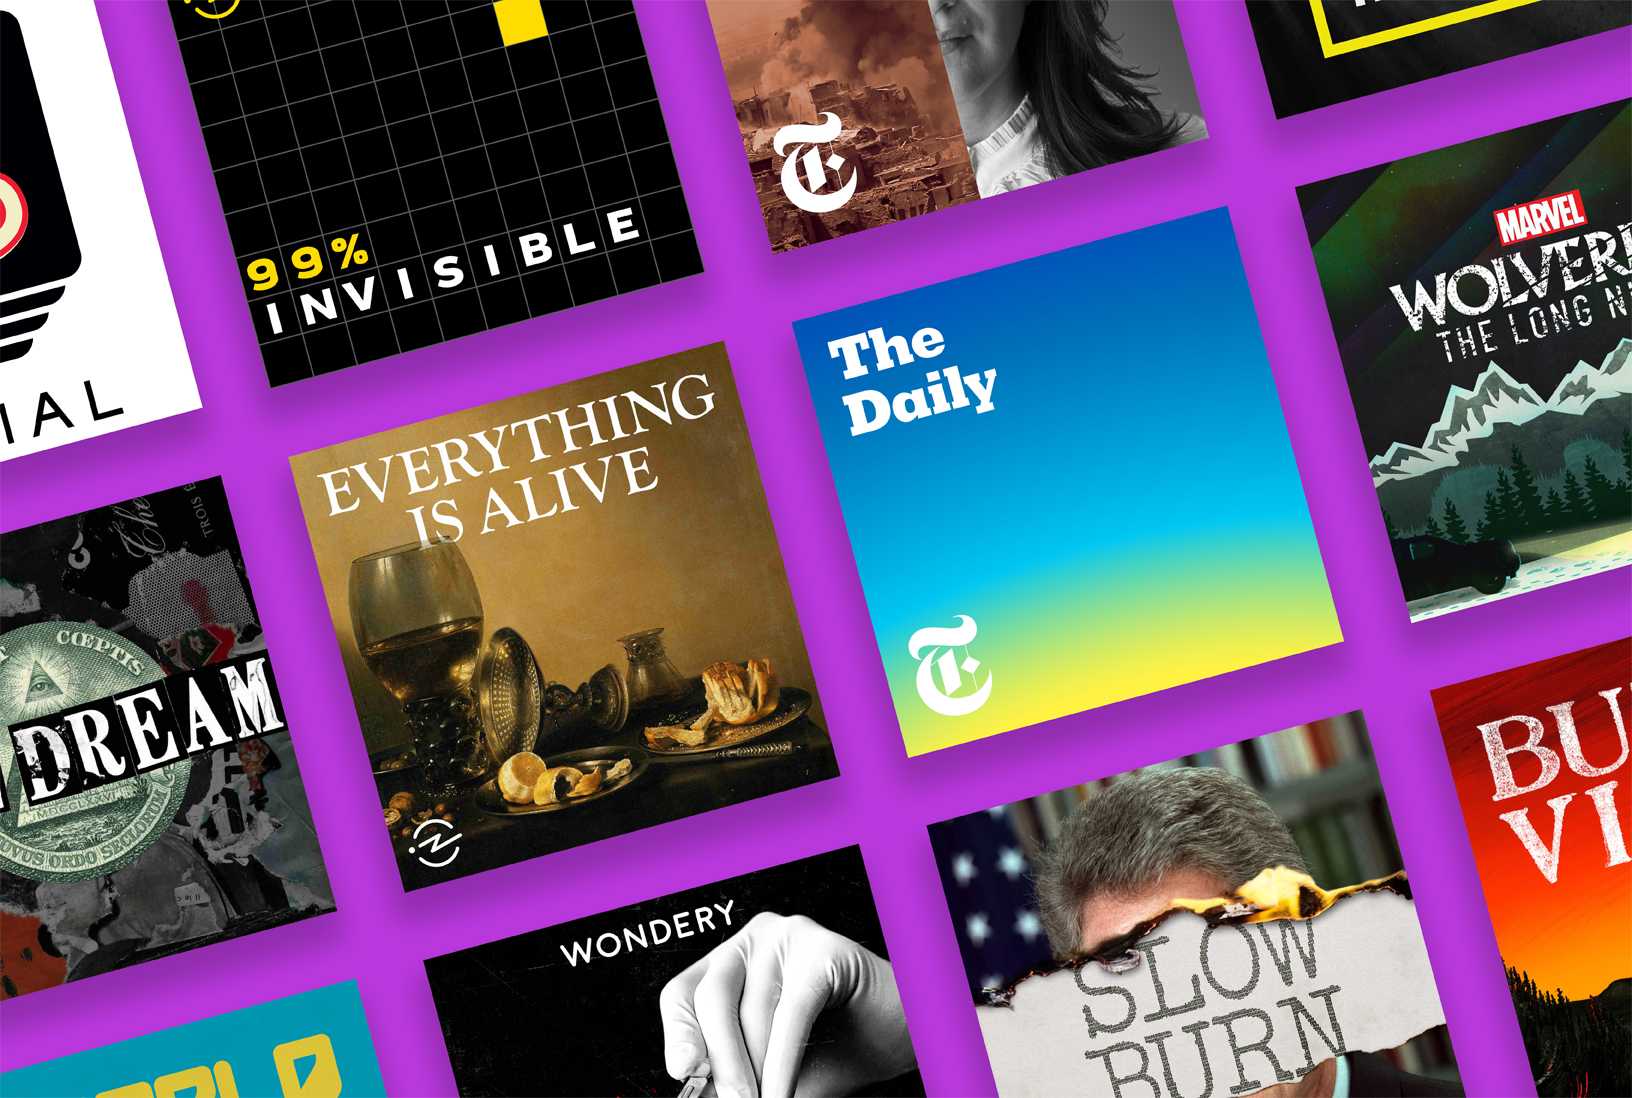 https://www.apple.com/newsroom/images/product/watch/standard/Apple-presents-best-of-2018-Podcasts-12032018_big.jpg.large_2x.jpg